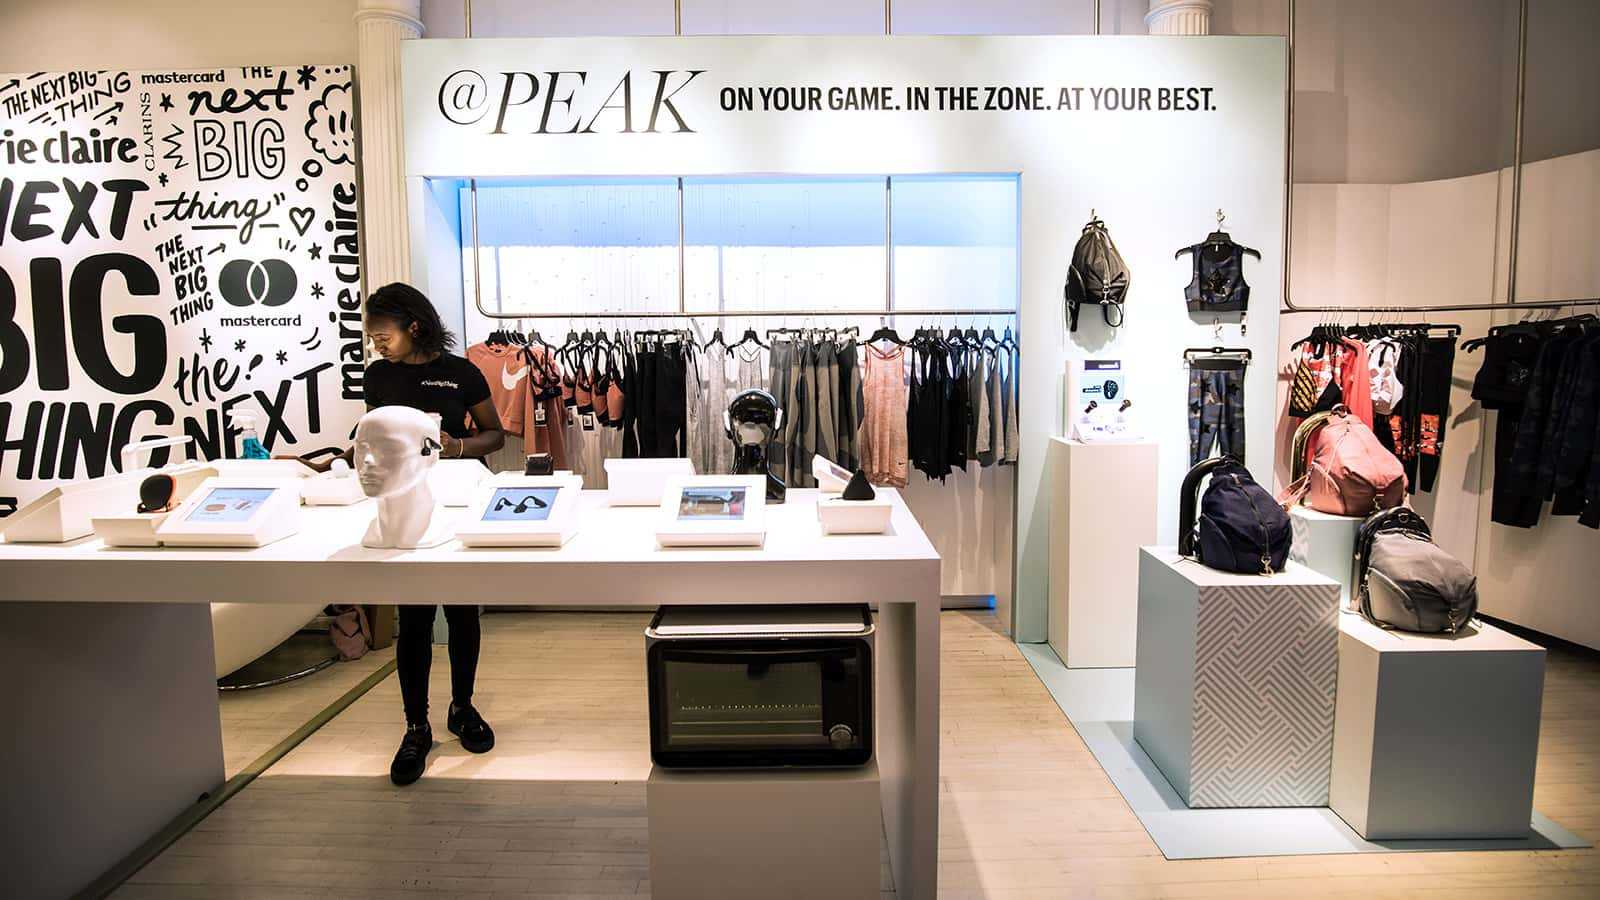 View of store displays at Marie Claire Next Big Thing Concept Shop in New York City 2017.